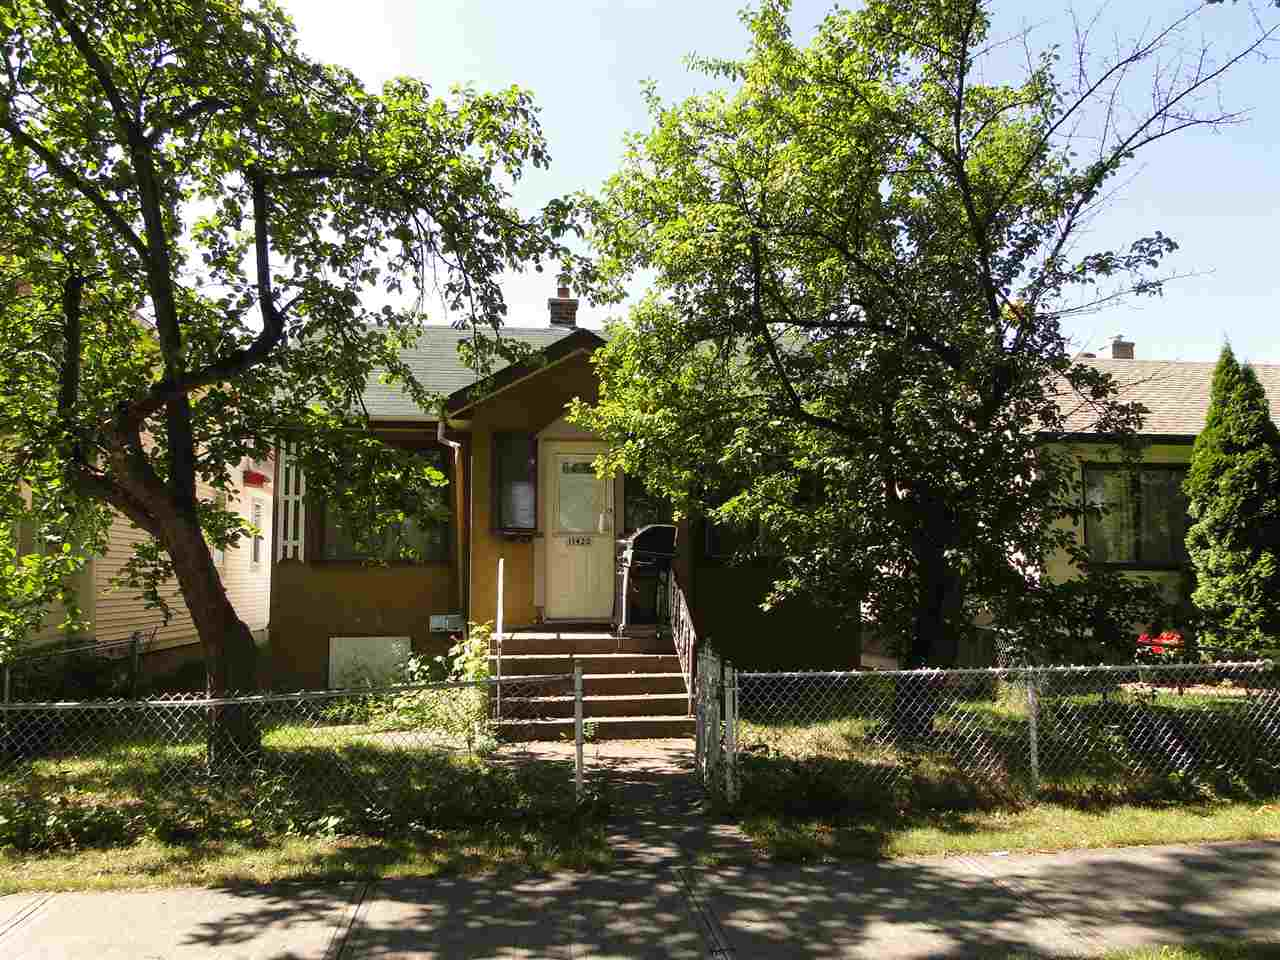 """A project with a great start!.. This 1036 sq.ft. 3 bedroom Bungalow located in the Parkdale community is in the process of being renovated, the exterior walls have been upgrade to 2""""x6"""", new drywall, old flooring mostly removed and ready for flooring of your choice, some newer windows and a 328 sq.ft. addition with crawl space. The main floor has three bedrooms, a great start to the 4 piece bath, living room, dining room, small open den, main floor laundry room. There is a separate entrance to an open unfinished basement under the original dwelling, a previous suite was removed. The exterior is currently a variety of stucco, vinyl and waiting to be completed. A great start to a beautiful home, or an investment property. The appliances currently in the property do not stay."""